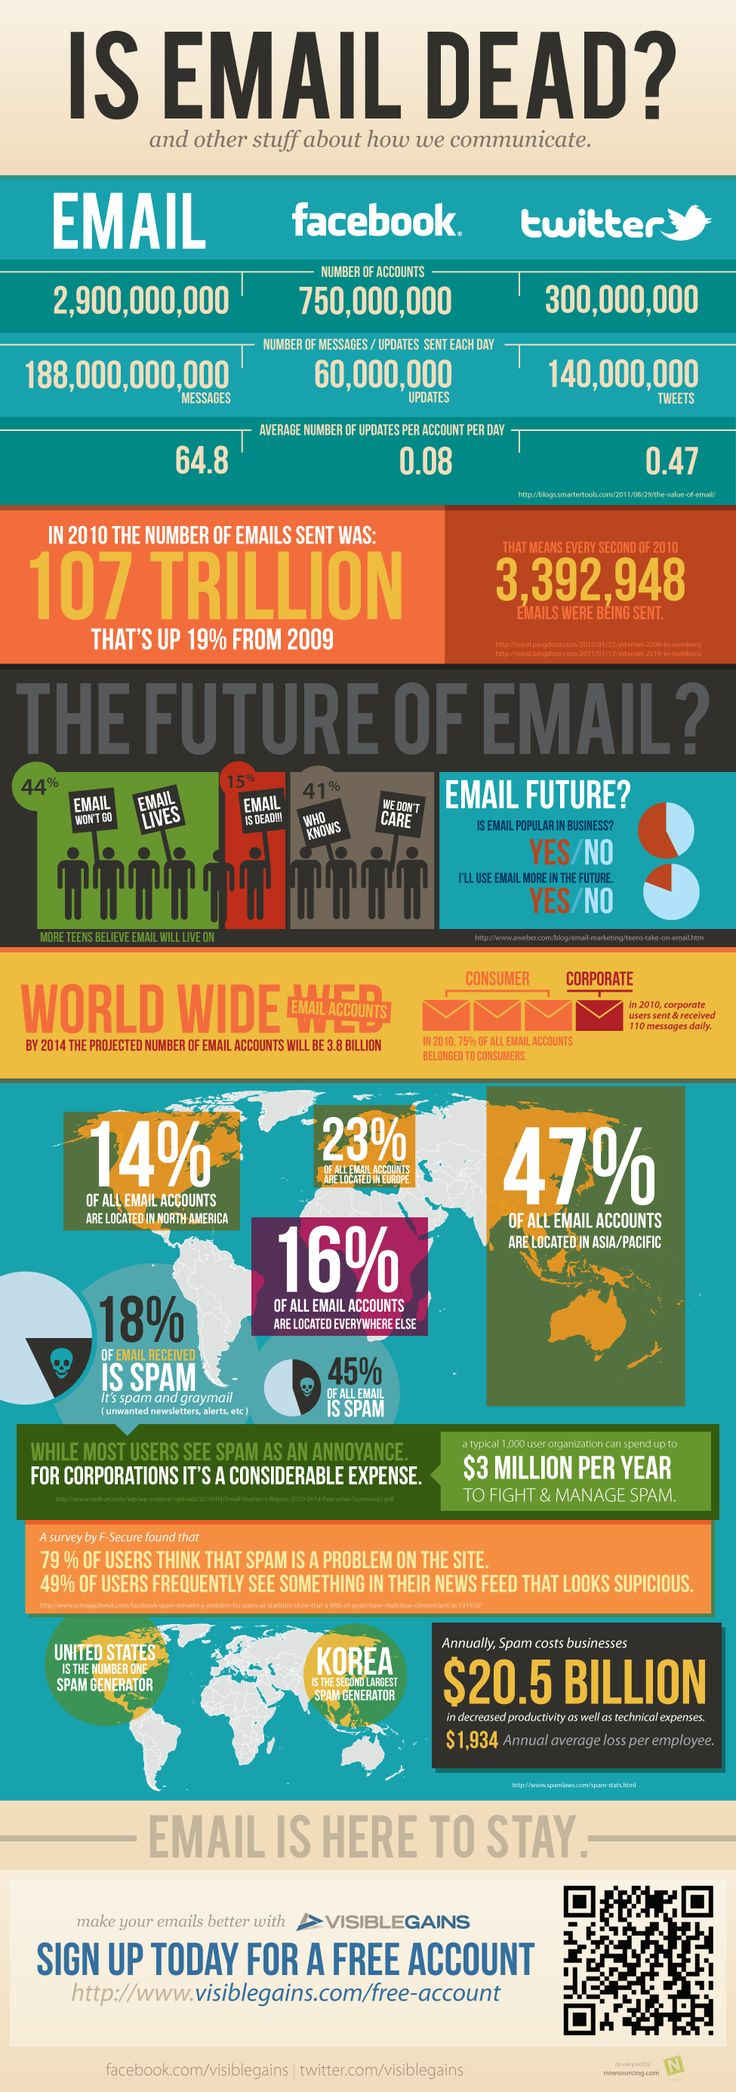 Has Facebook Killed Email? [In